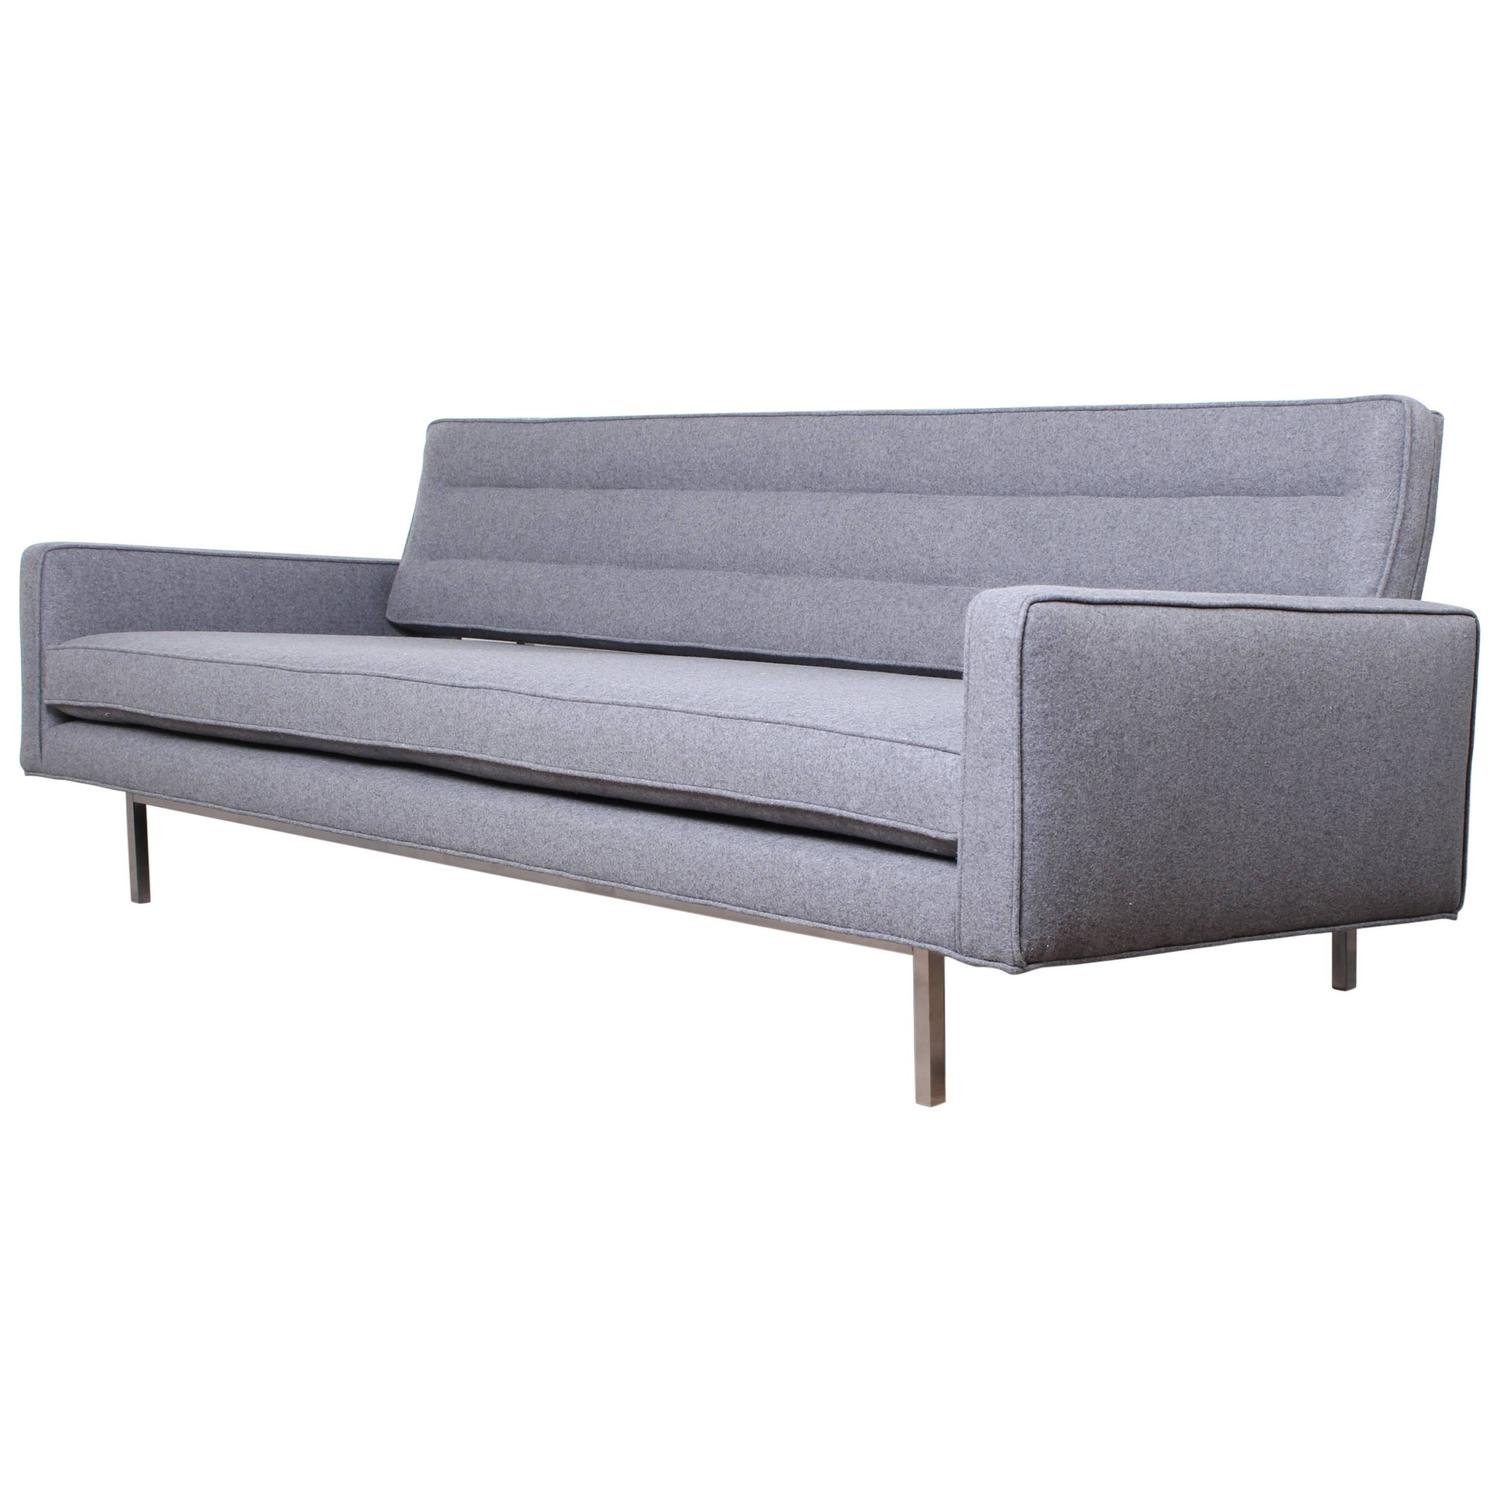 Convertible Sofa or Daybed by Richard Shultz for Knoll For Sale at